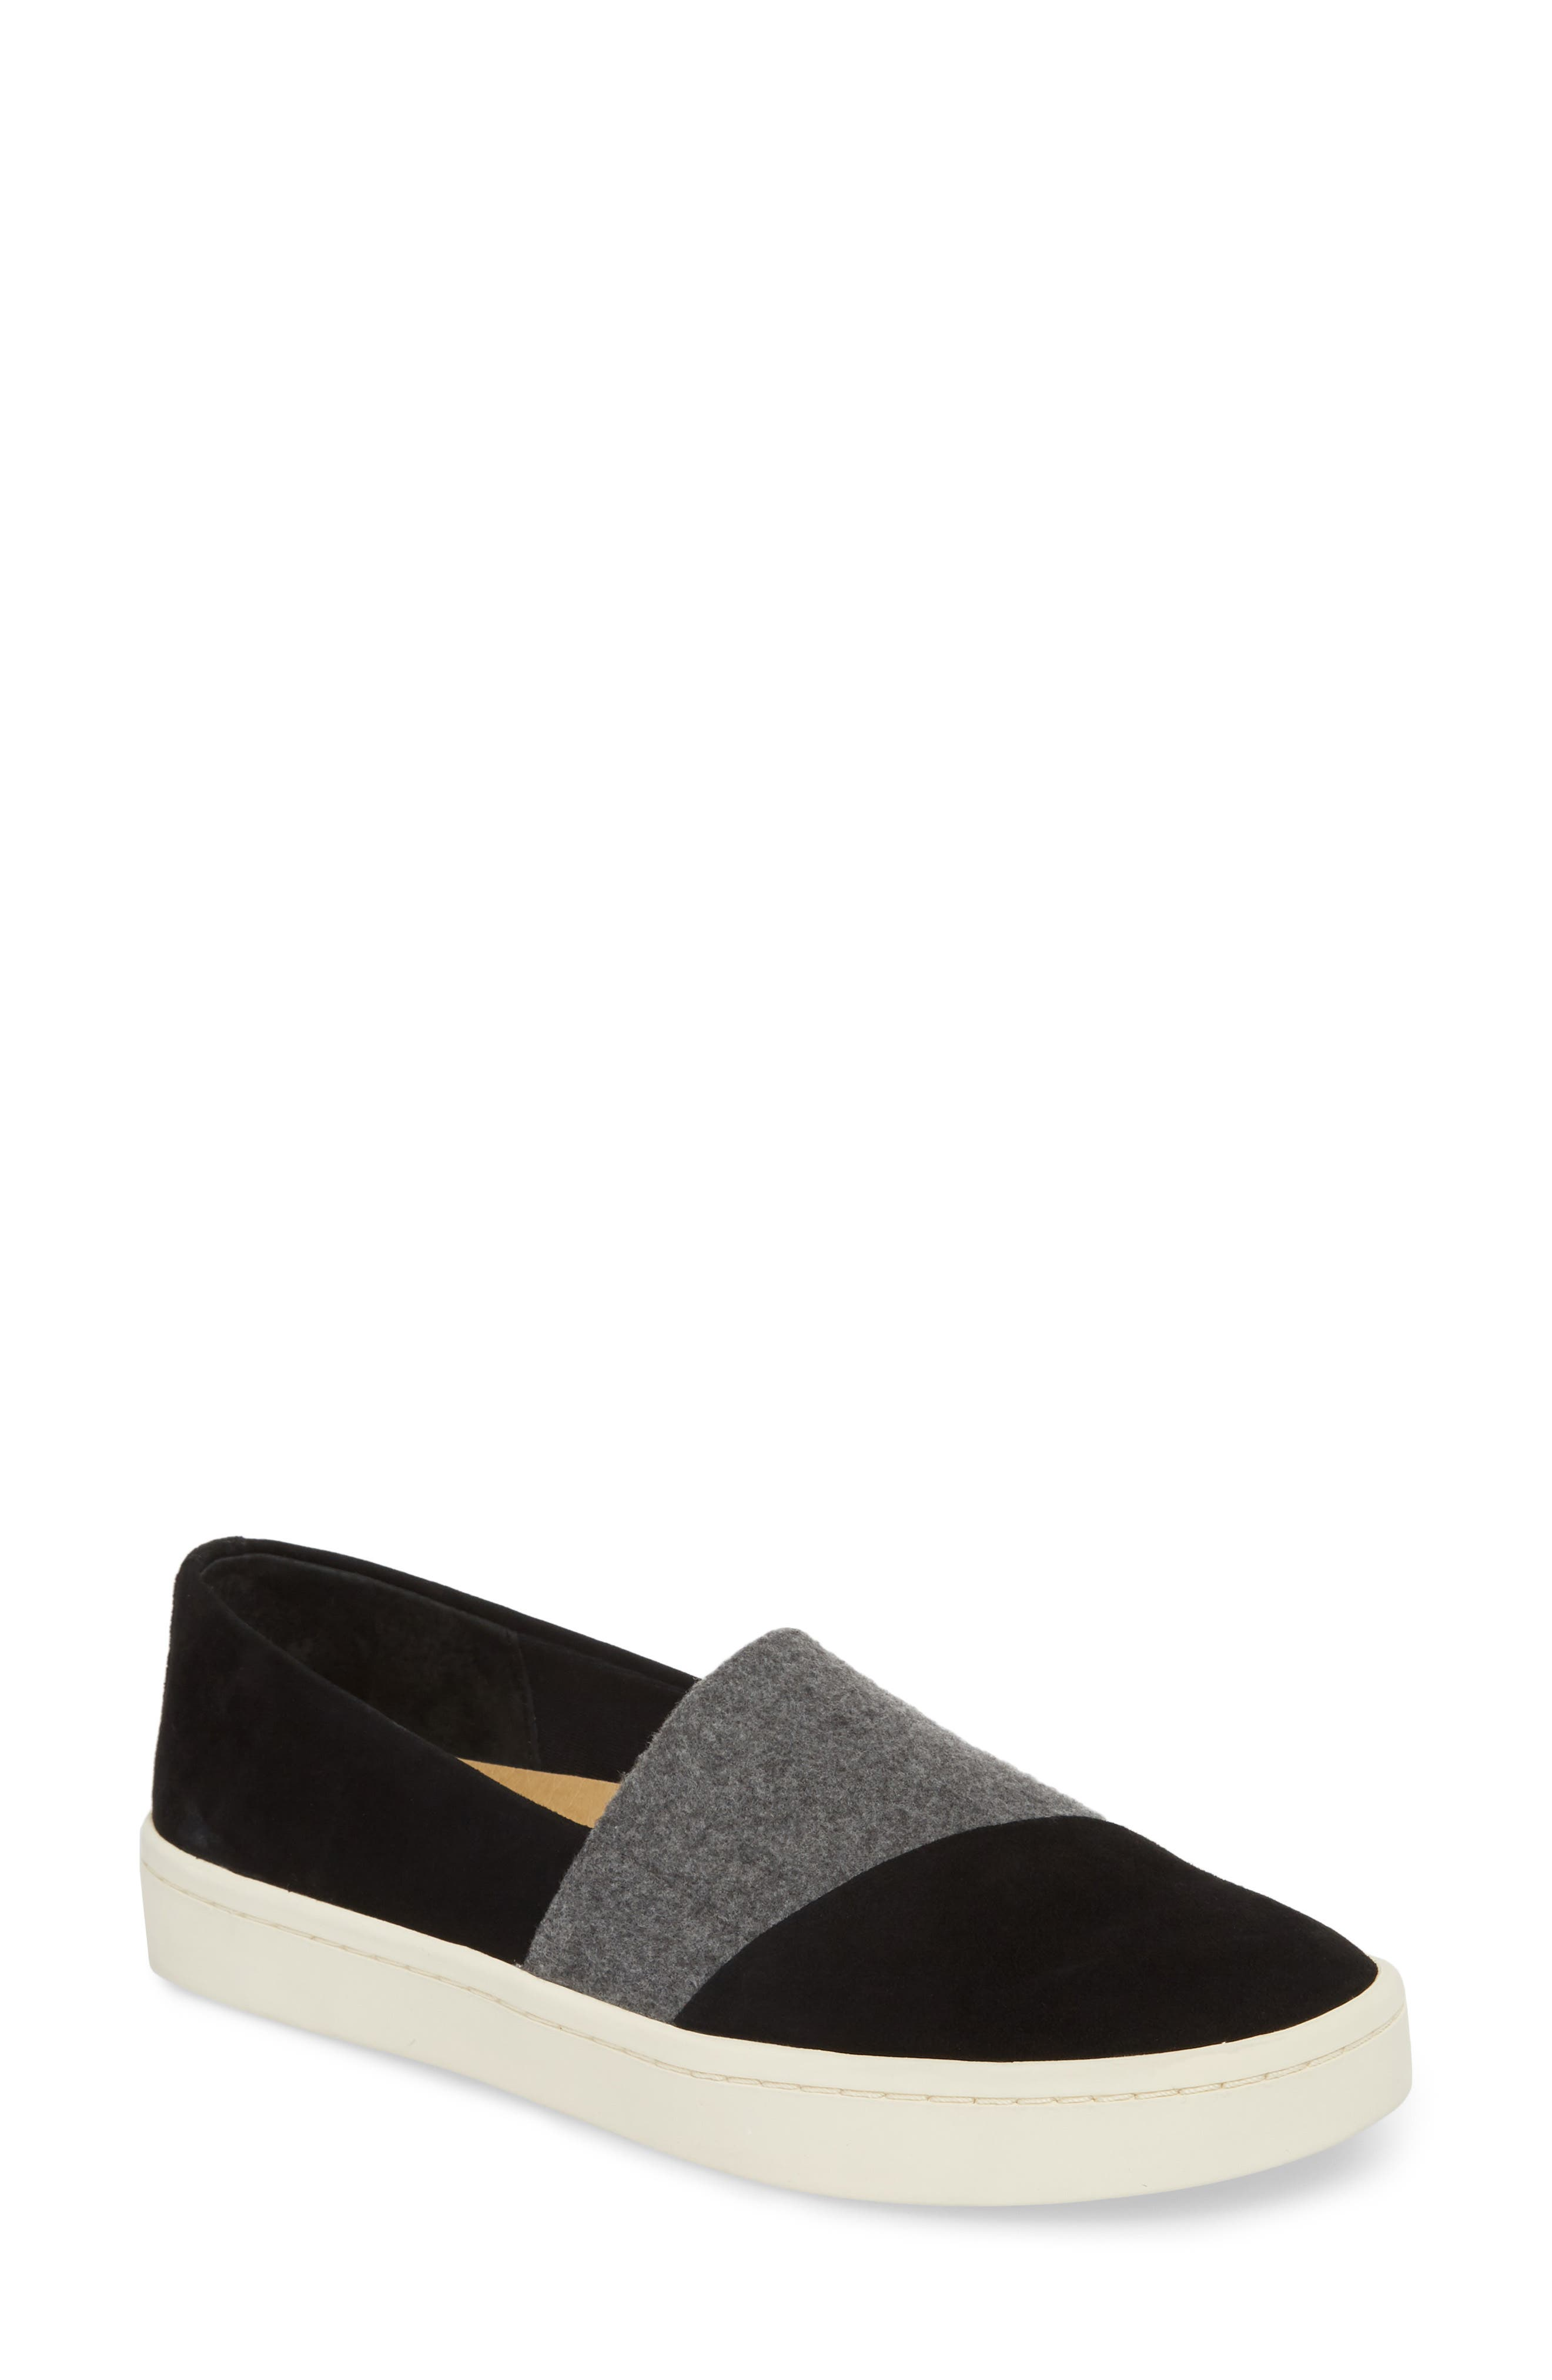 Nouvel Slip-On Sneaker,                             Main thumbnail 1, color,                             Black/ Grey Suede